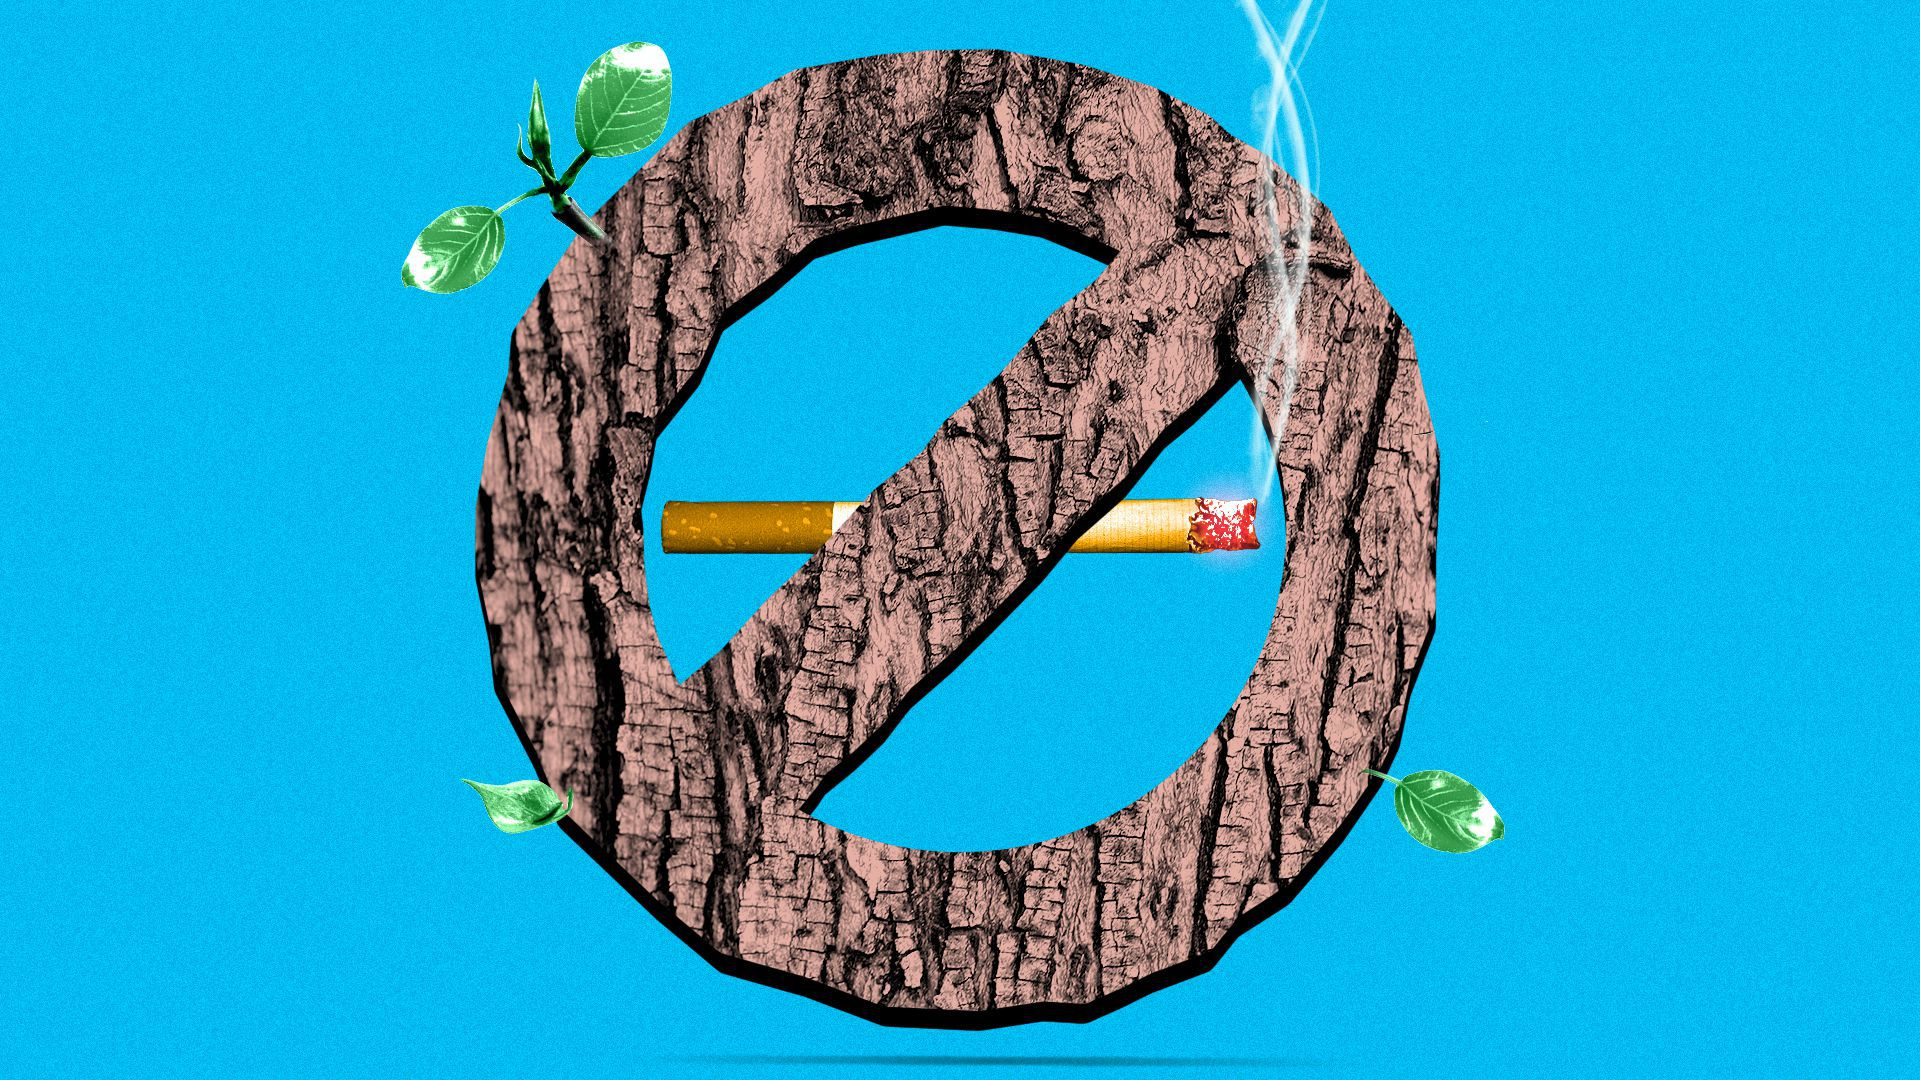 Illustration of a cigarette with a no smoking sign made of tree bark.